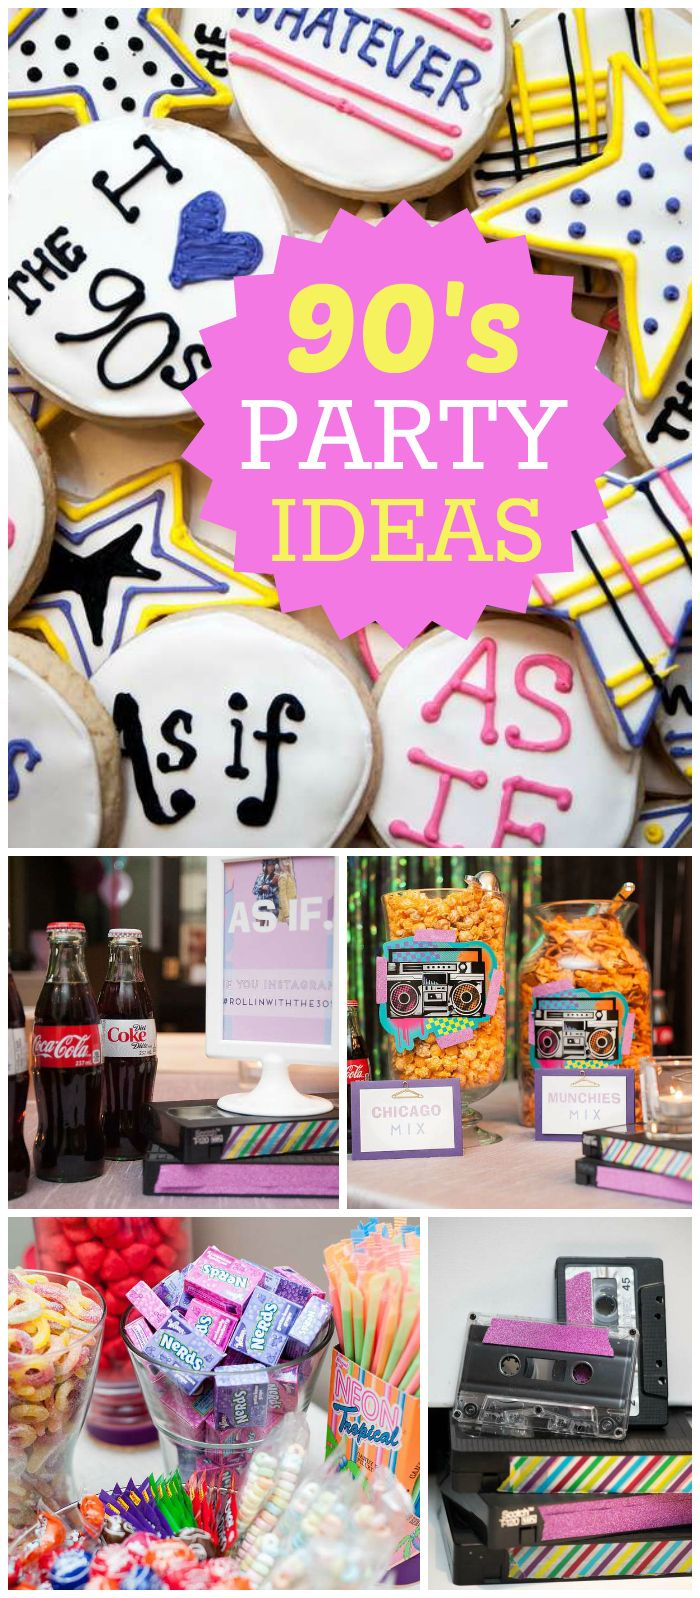 Head Back To The 90s With This Retro Party See More Planning Ideas At CatchMyParty